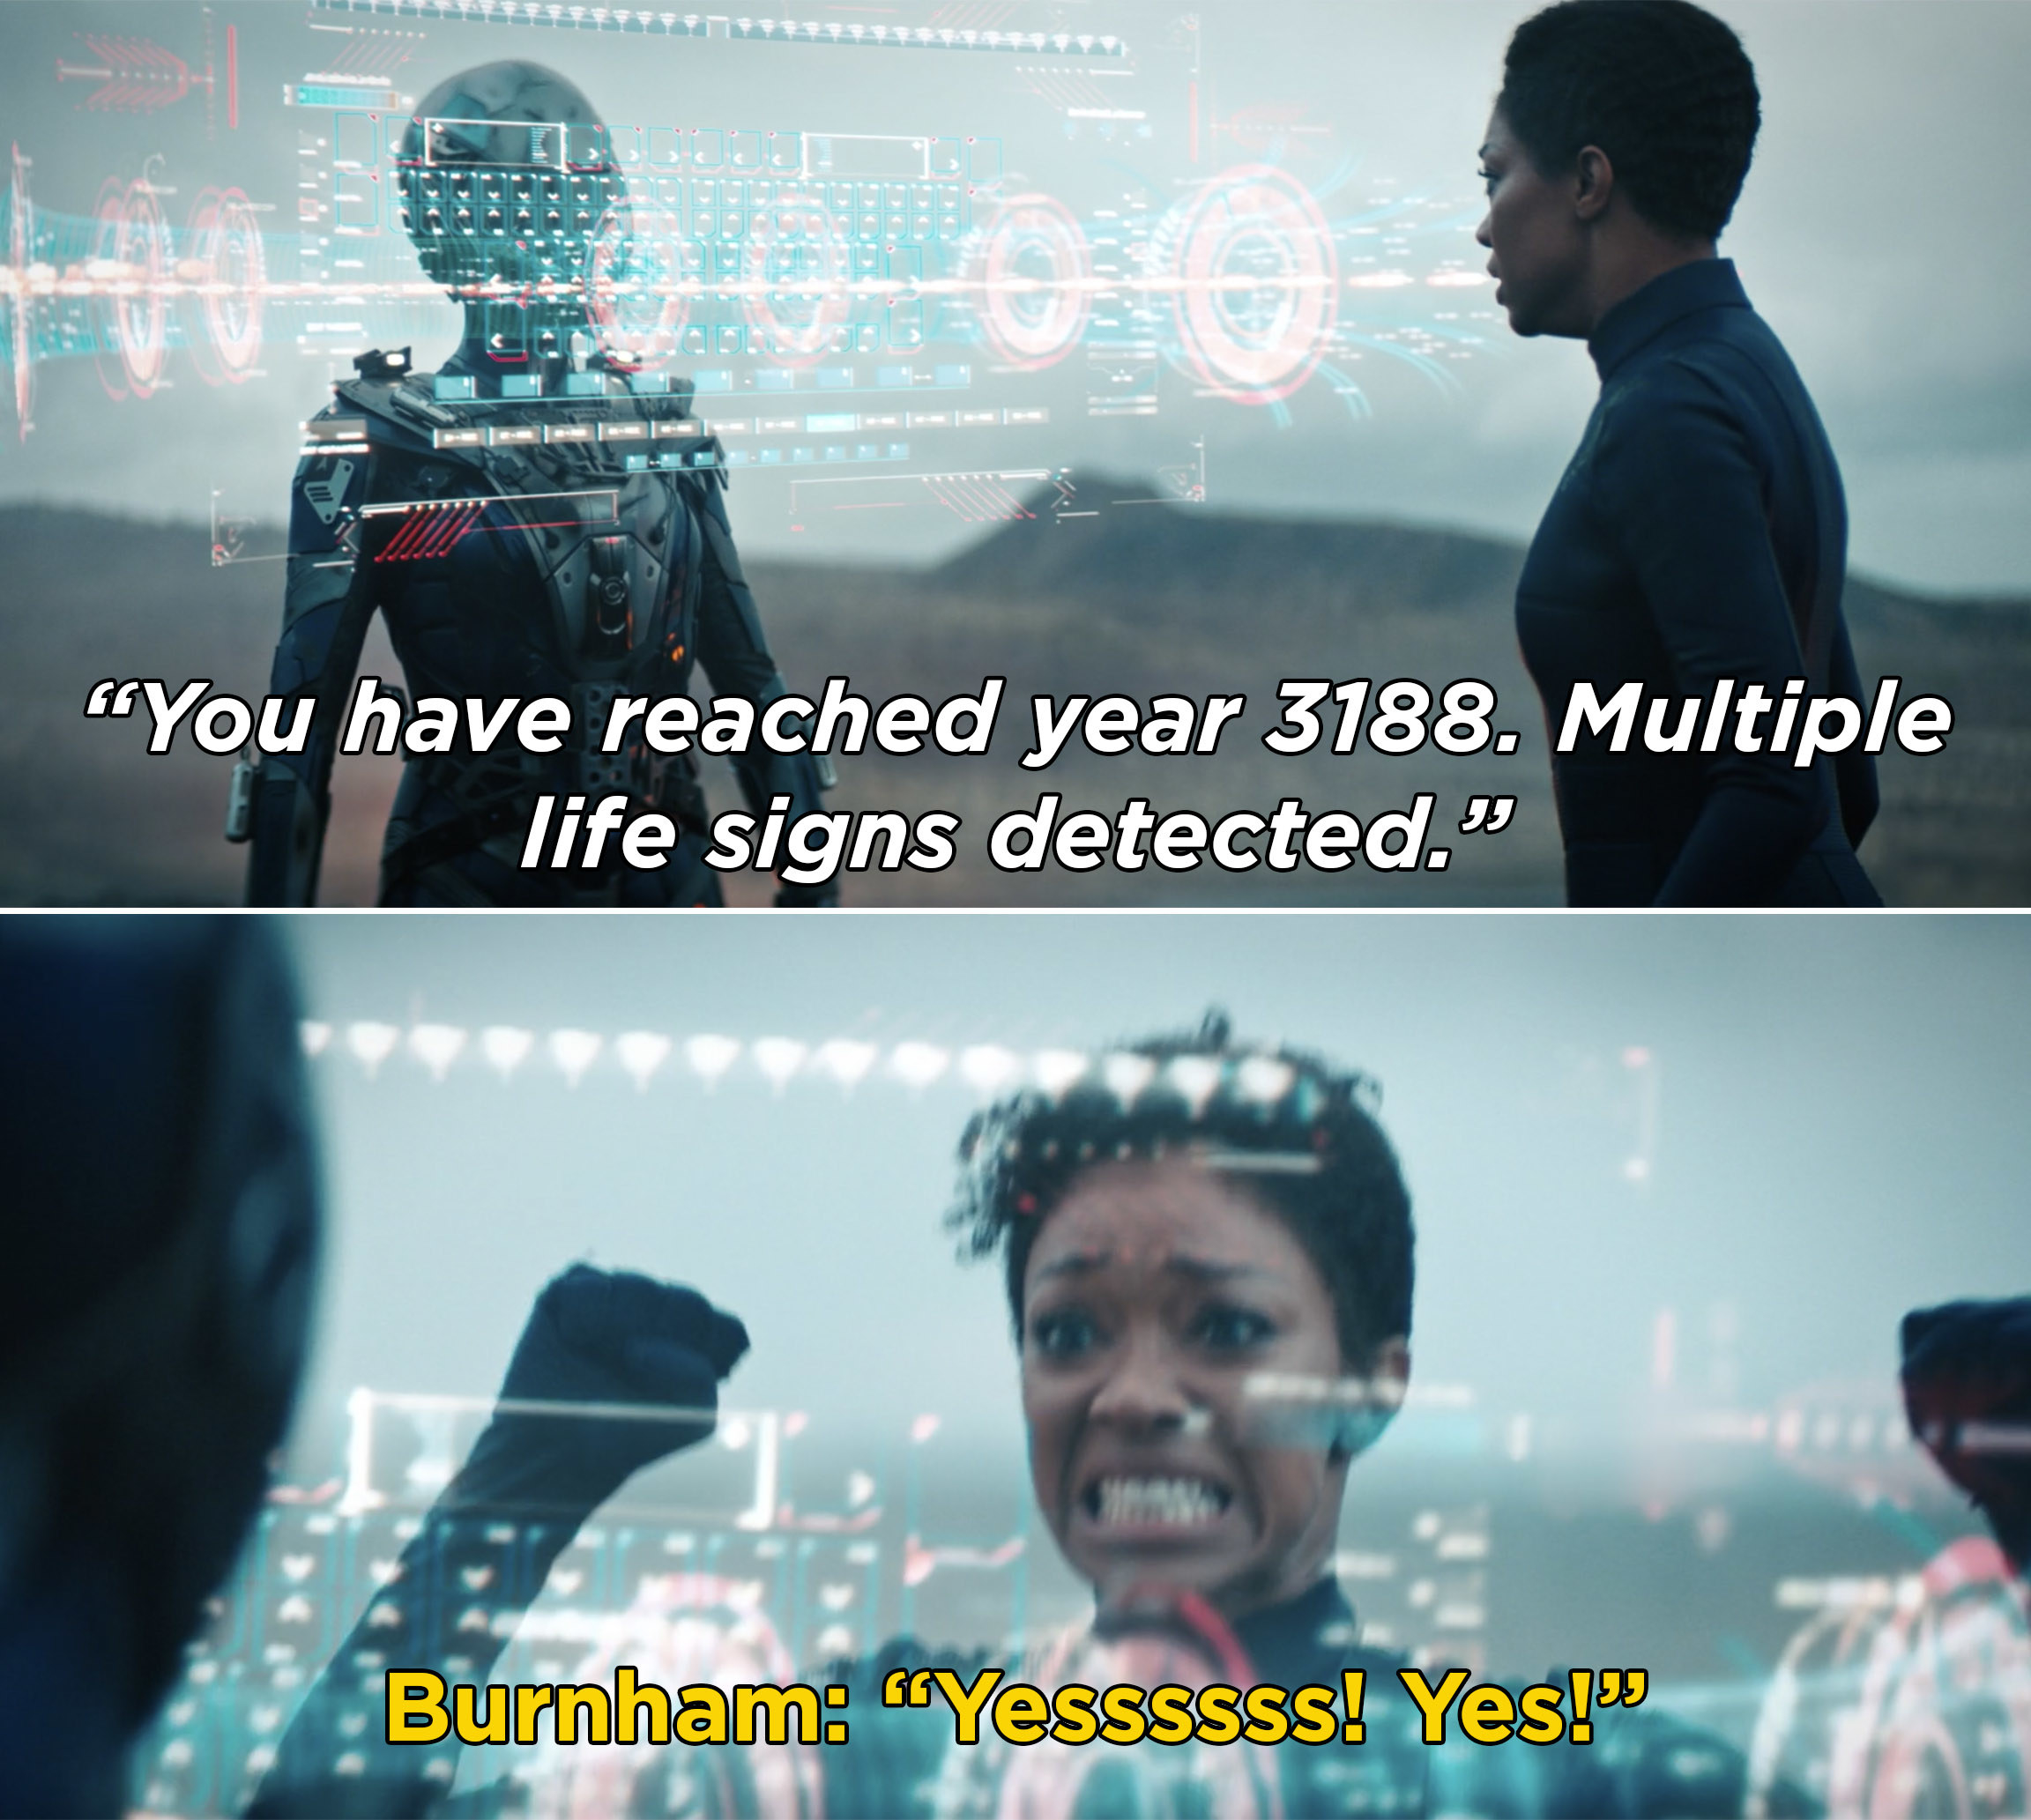 Burnham excitedly screaming after learning that there is life and she reached year 3188